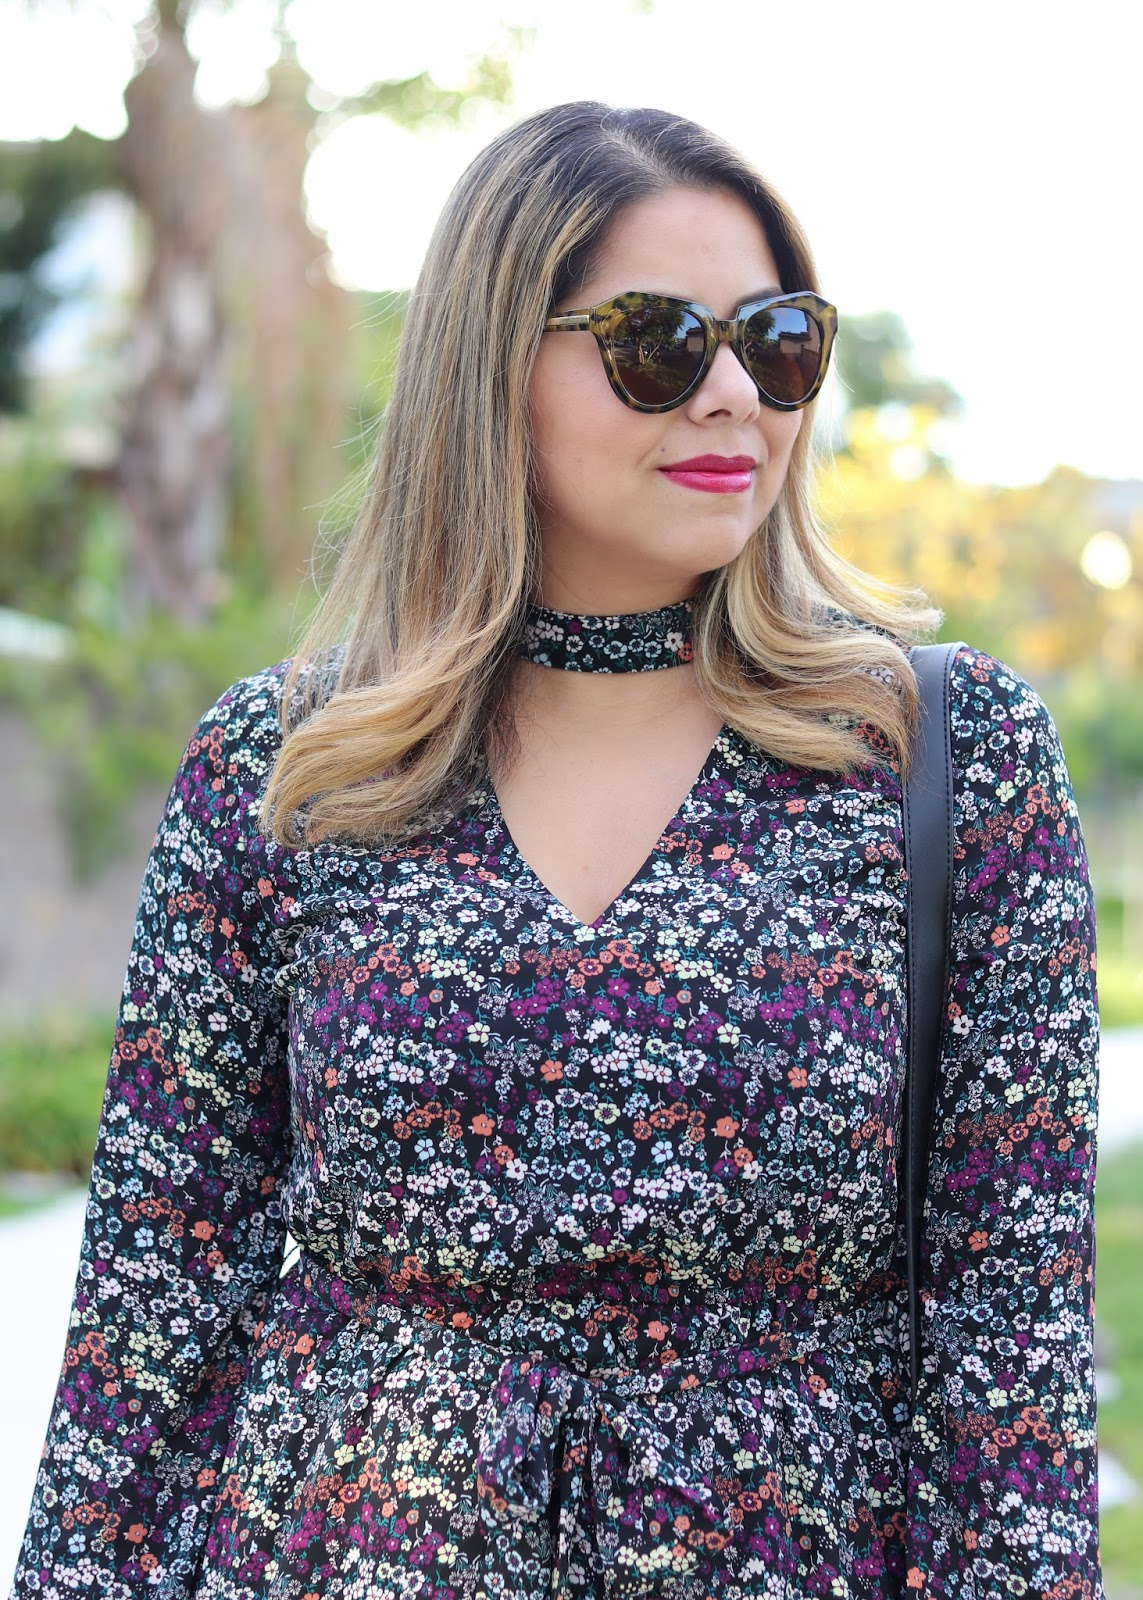 Karen Walker sunglasses, mac liptensity marsala, floral dress with choker